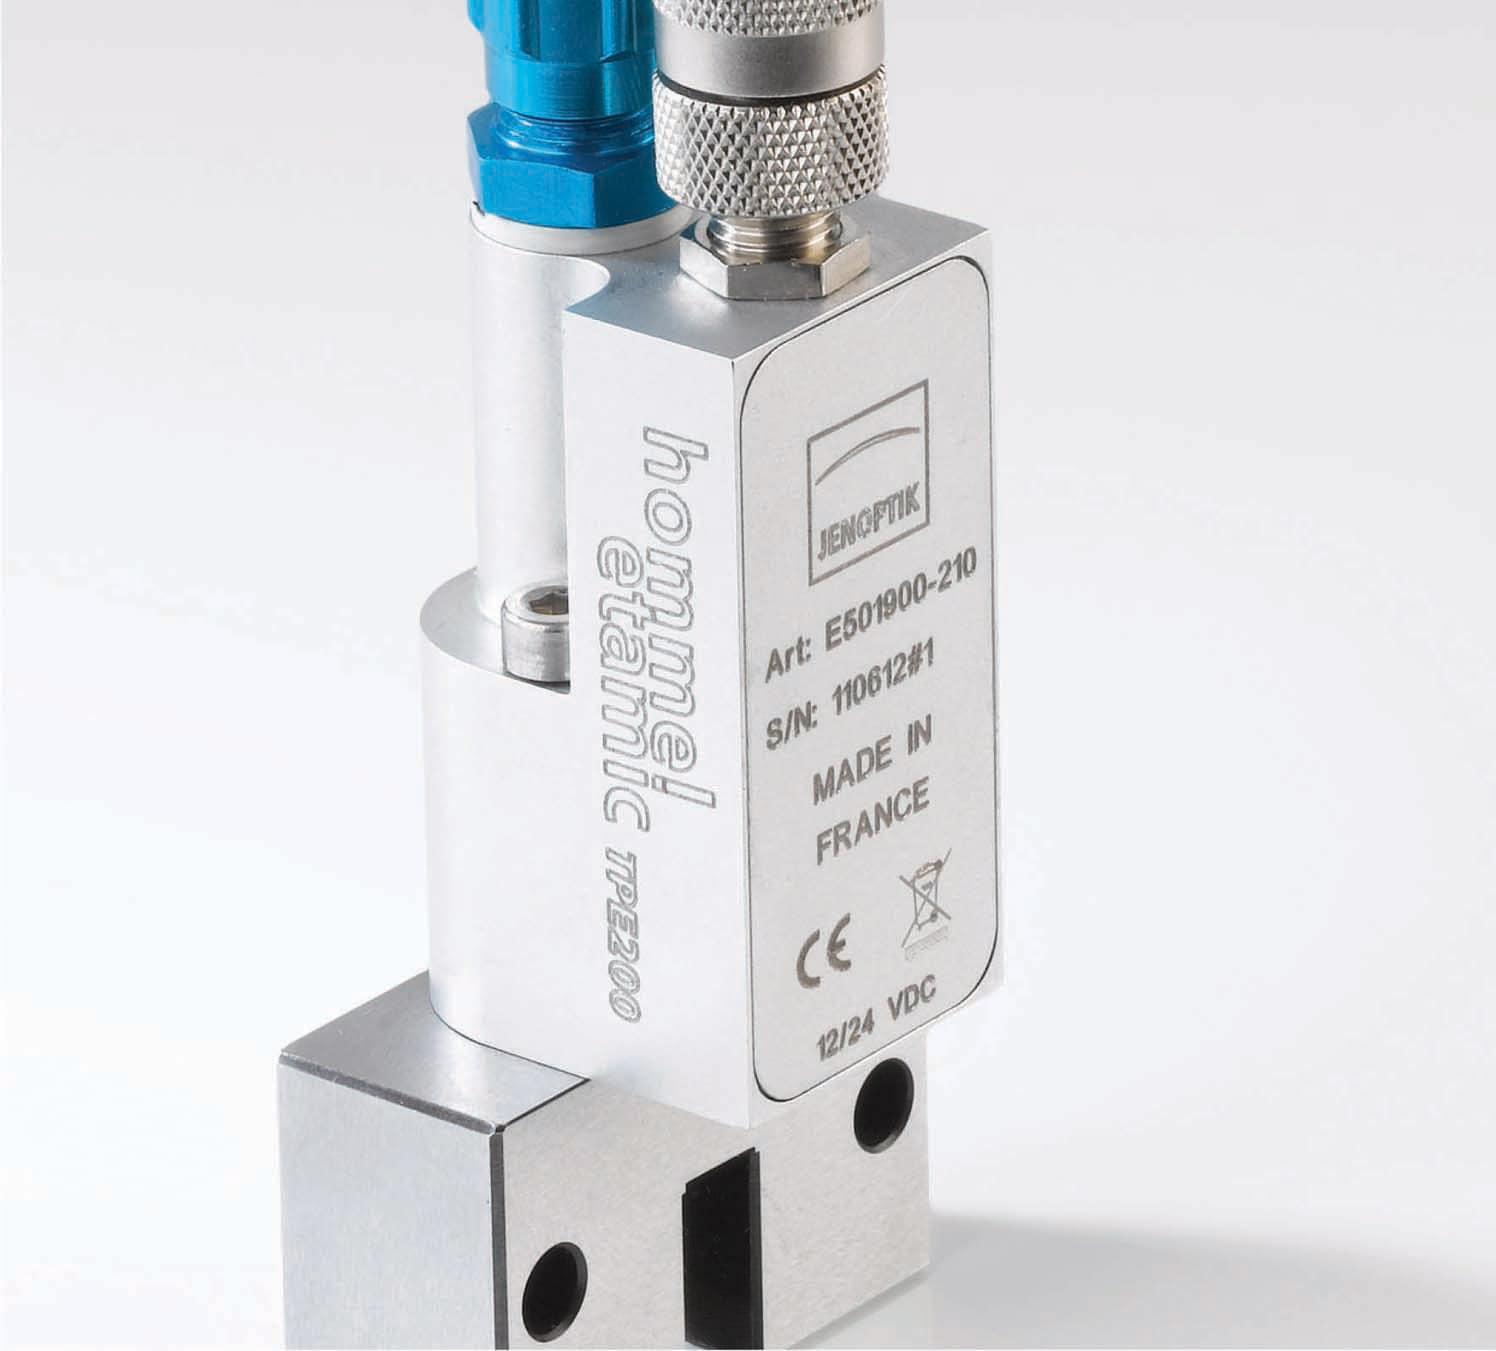 The electro-pneumatic TPE200 transducer allows you to transfer pneumatic measuring signals in numeric format